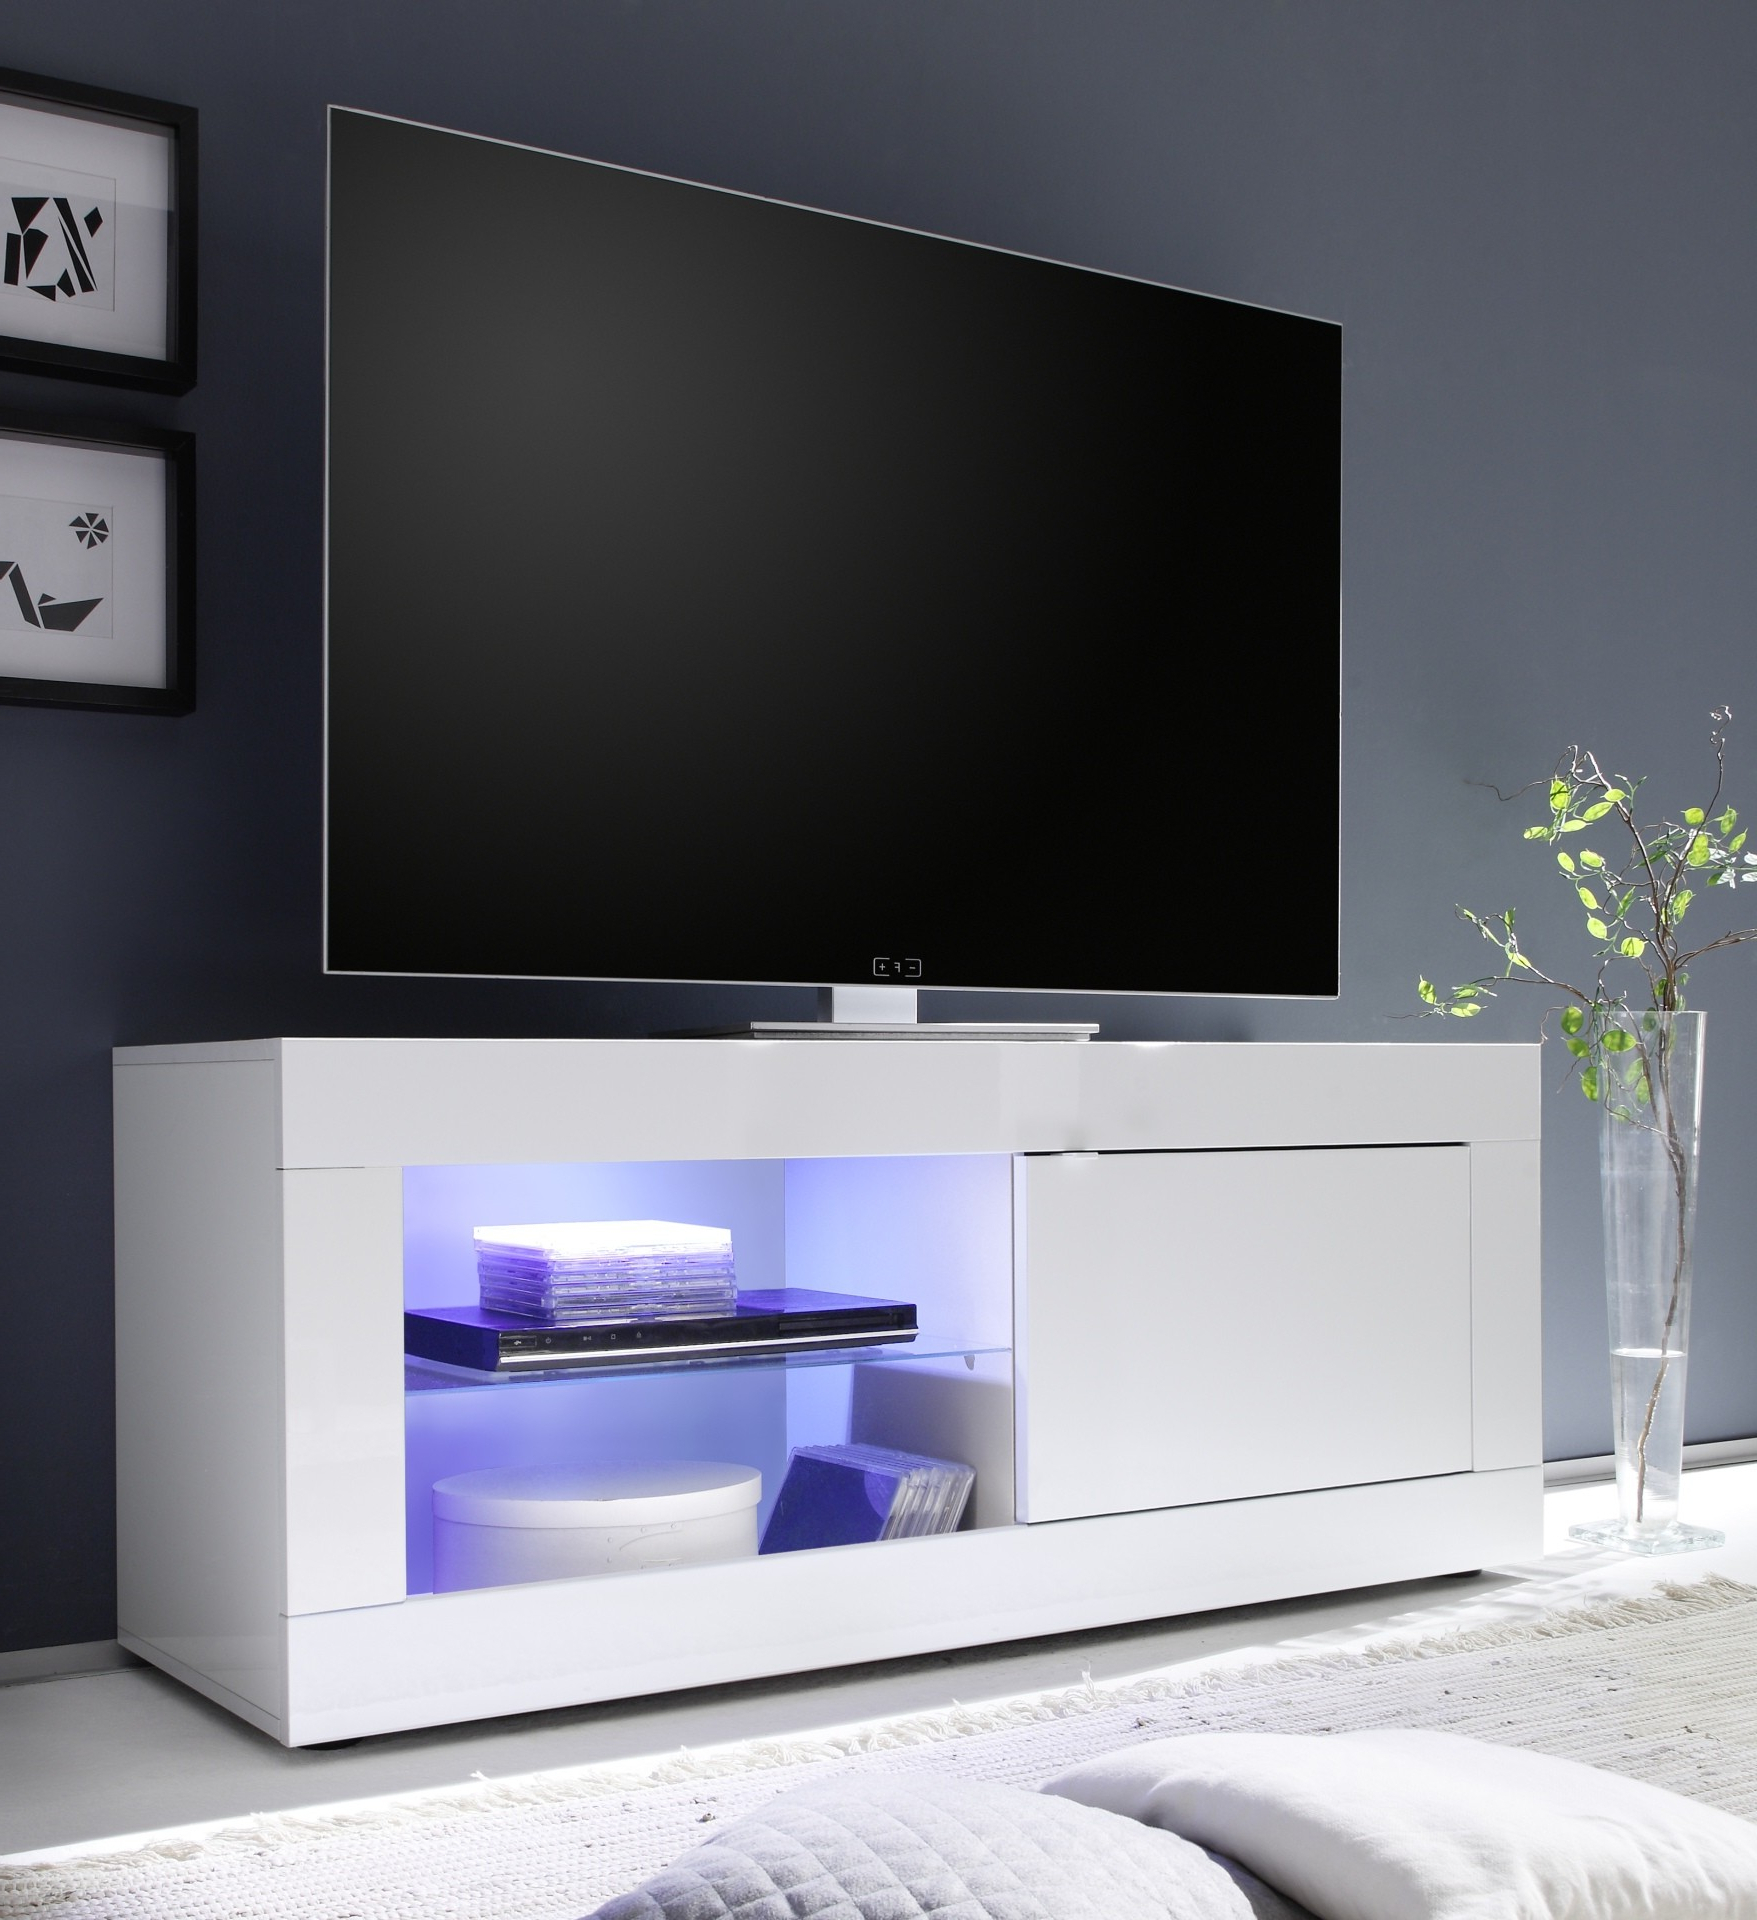 White Gloss Tv Cabinets Throughout Fashionable Dolcevita Gloss Tv Stand – Tv Stands (1235) – Sena Home Furniture (View 17 of 20)